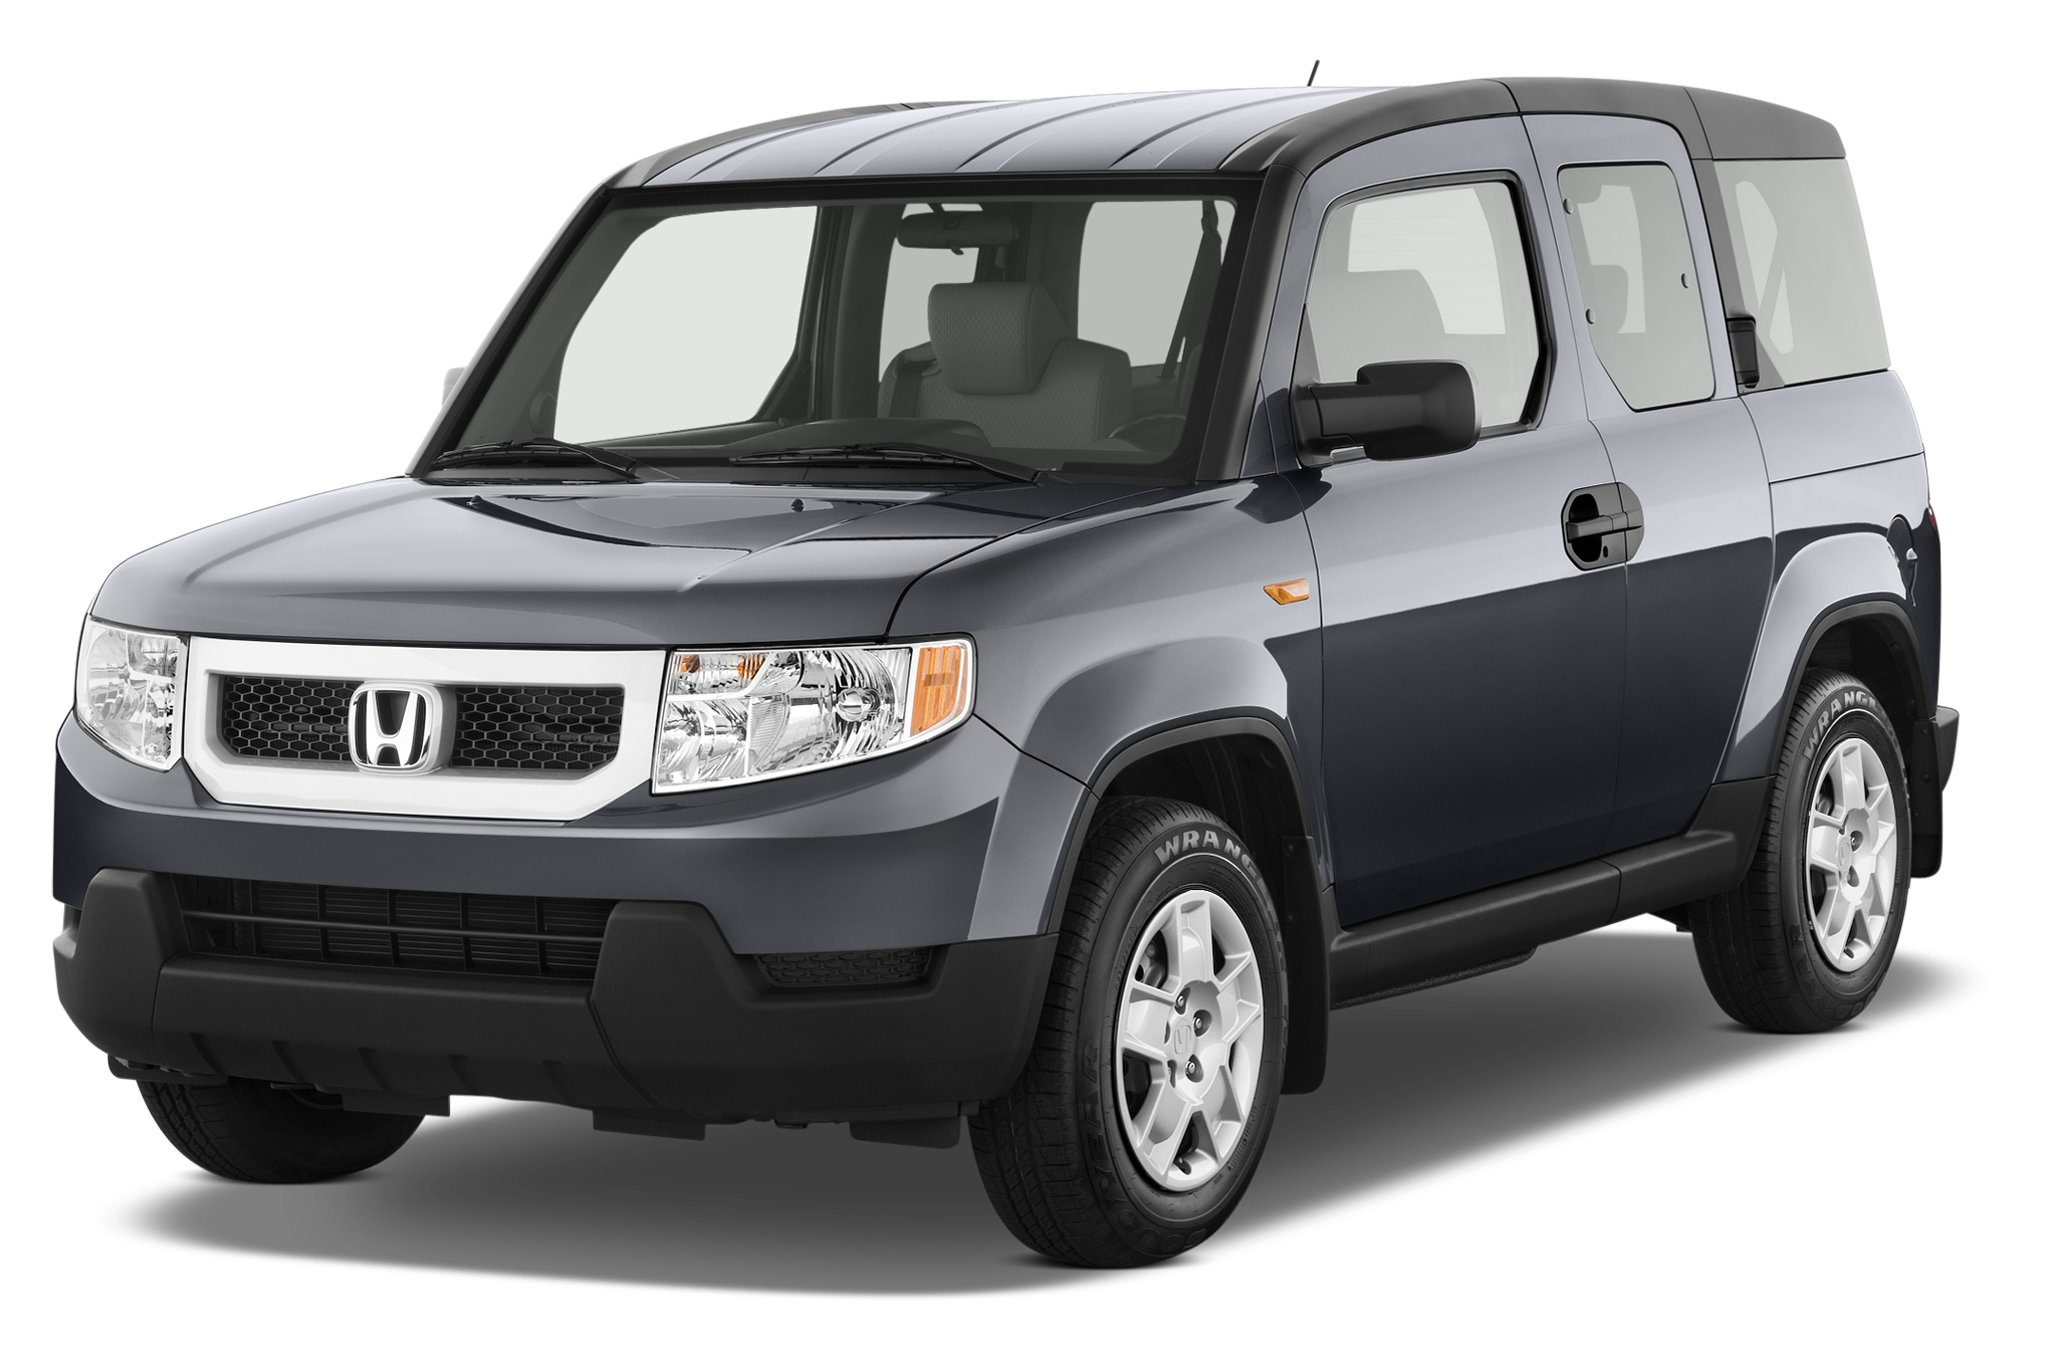 2010 honda element gets recalled for manual transmission